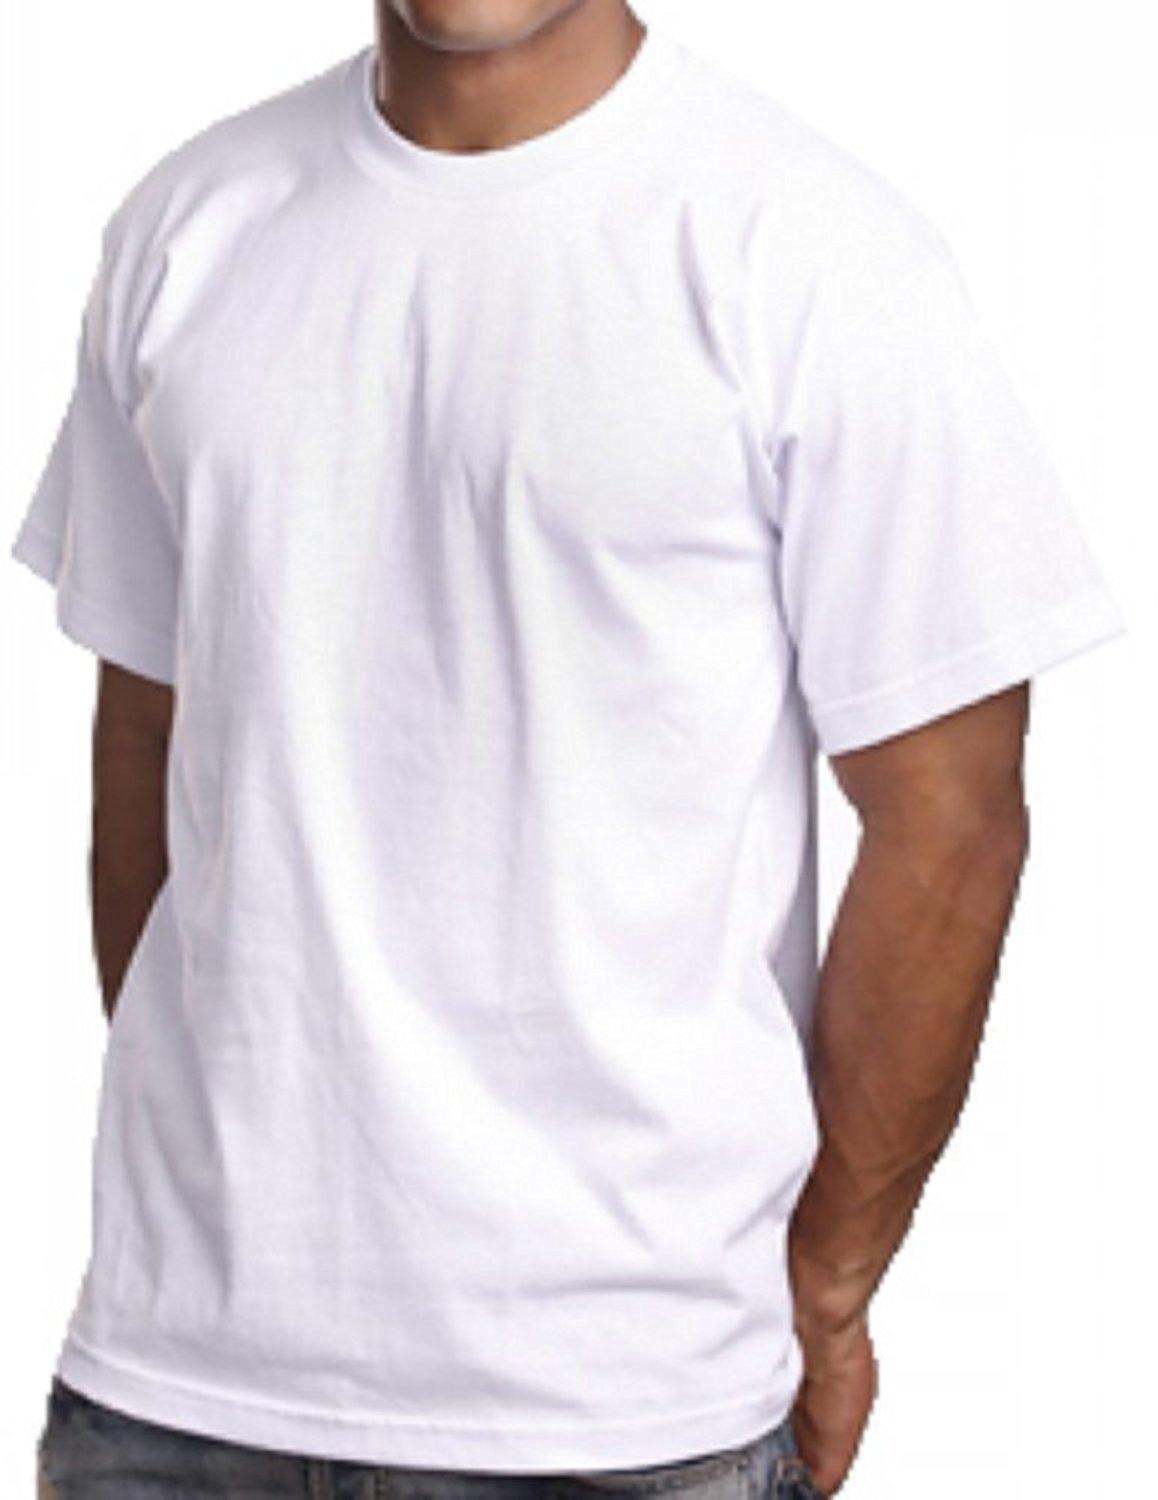 33fb979c3 Get Quotations · 3 Pack White Men's Plain T Shirts Pro 5 Athletic Blank  Tees Urban Wear